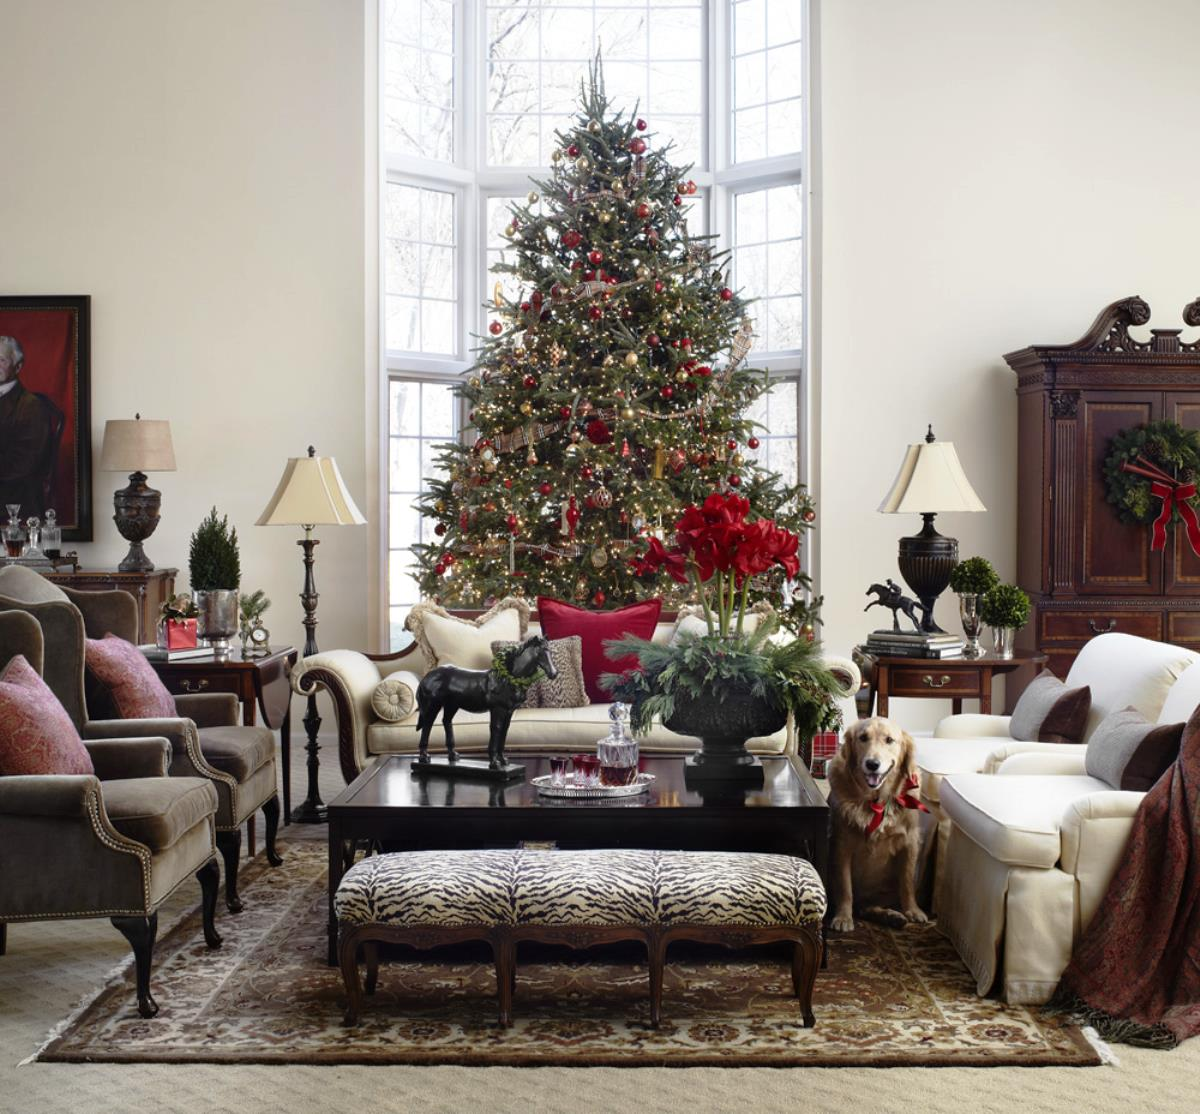 Inspiratie studio columbo page 2 for Pictures of living rooms decorated for christmas